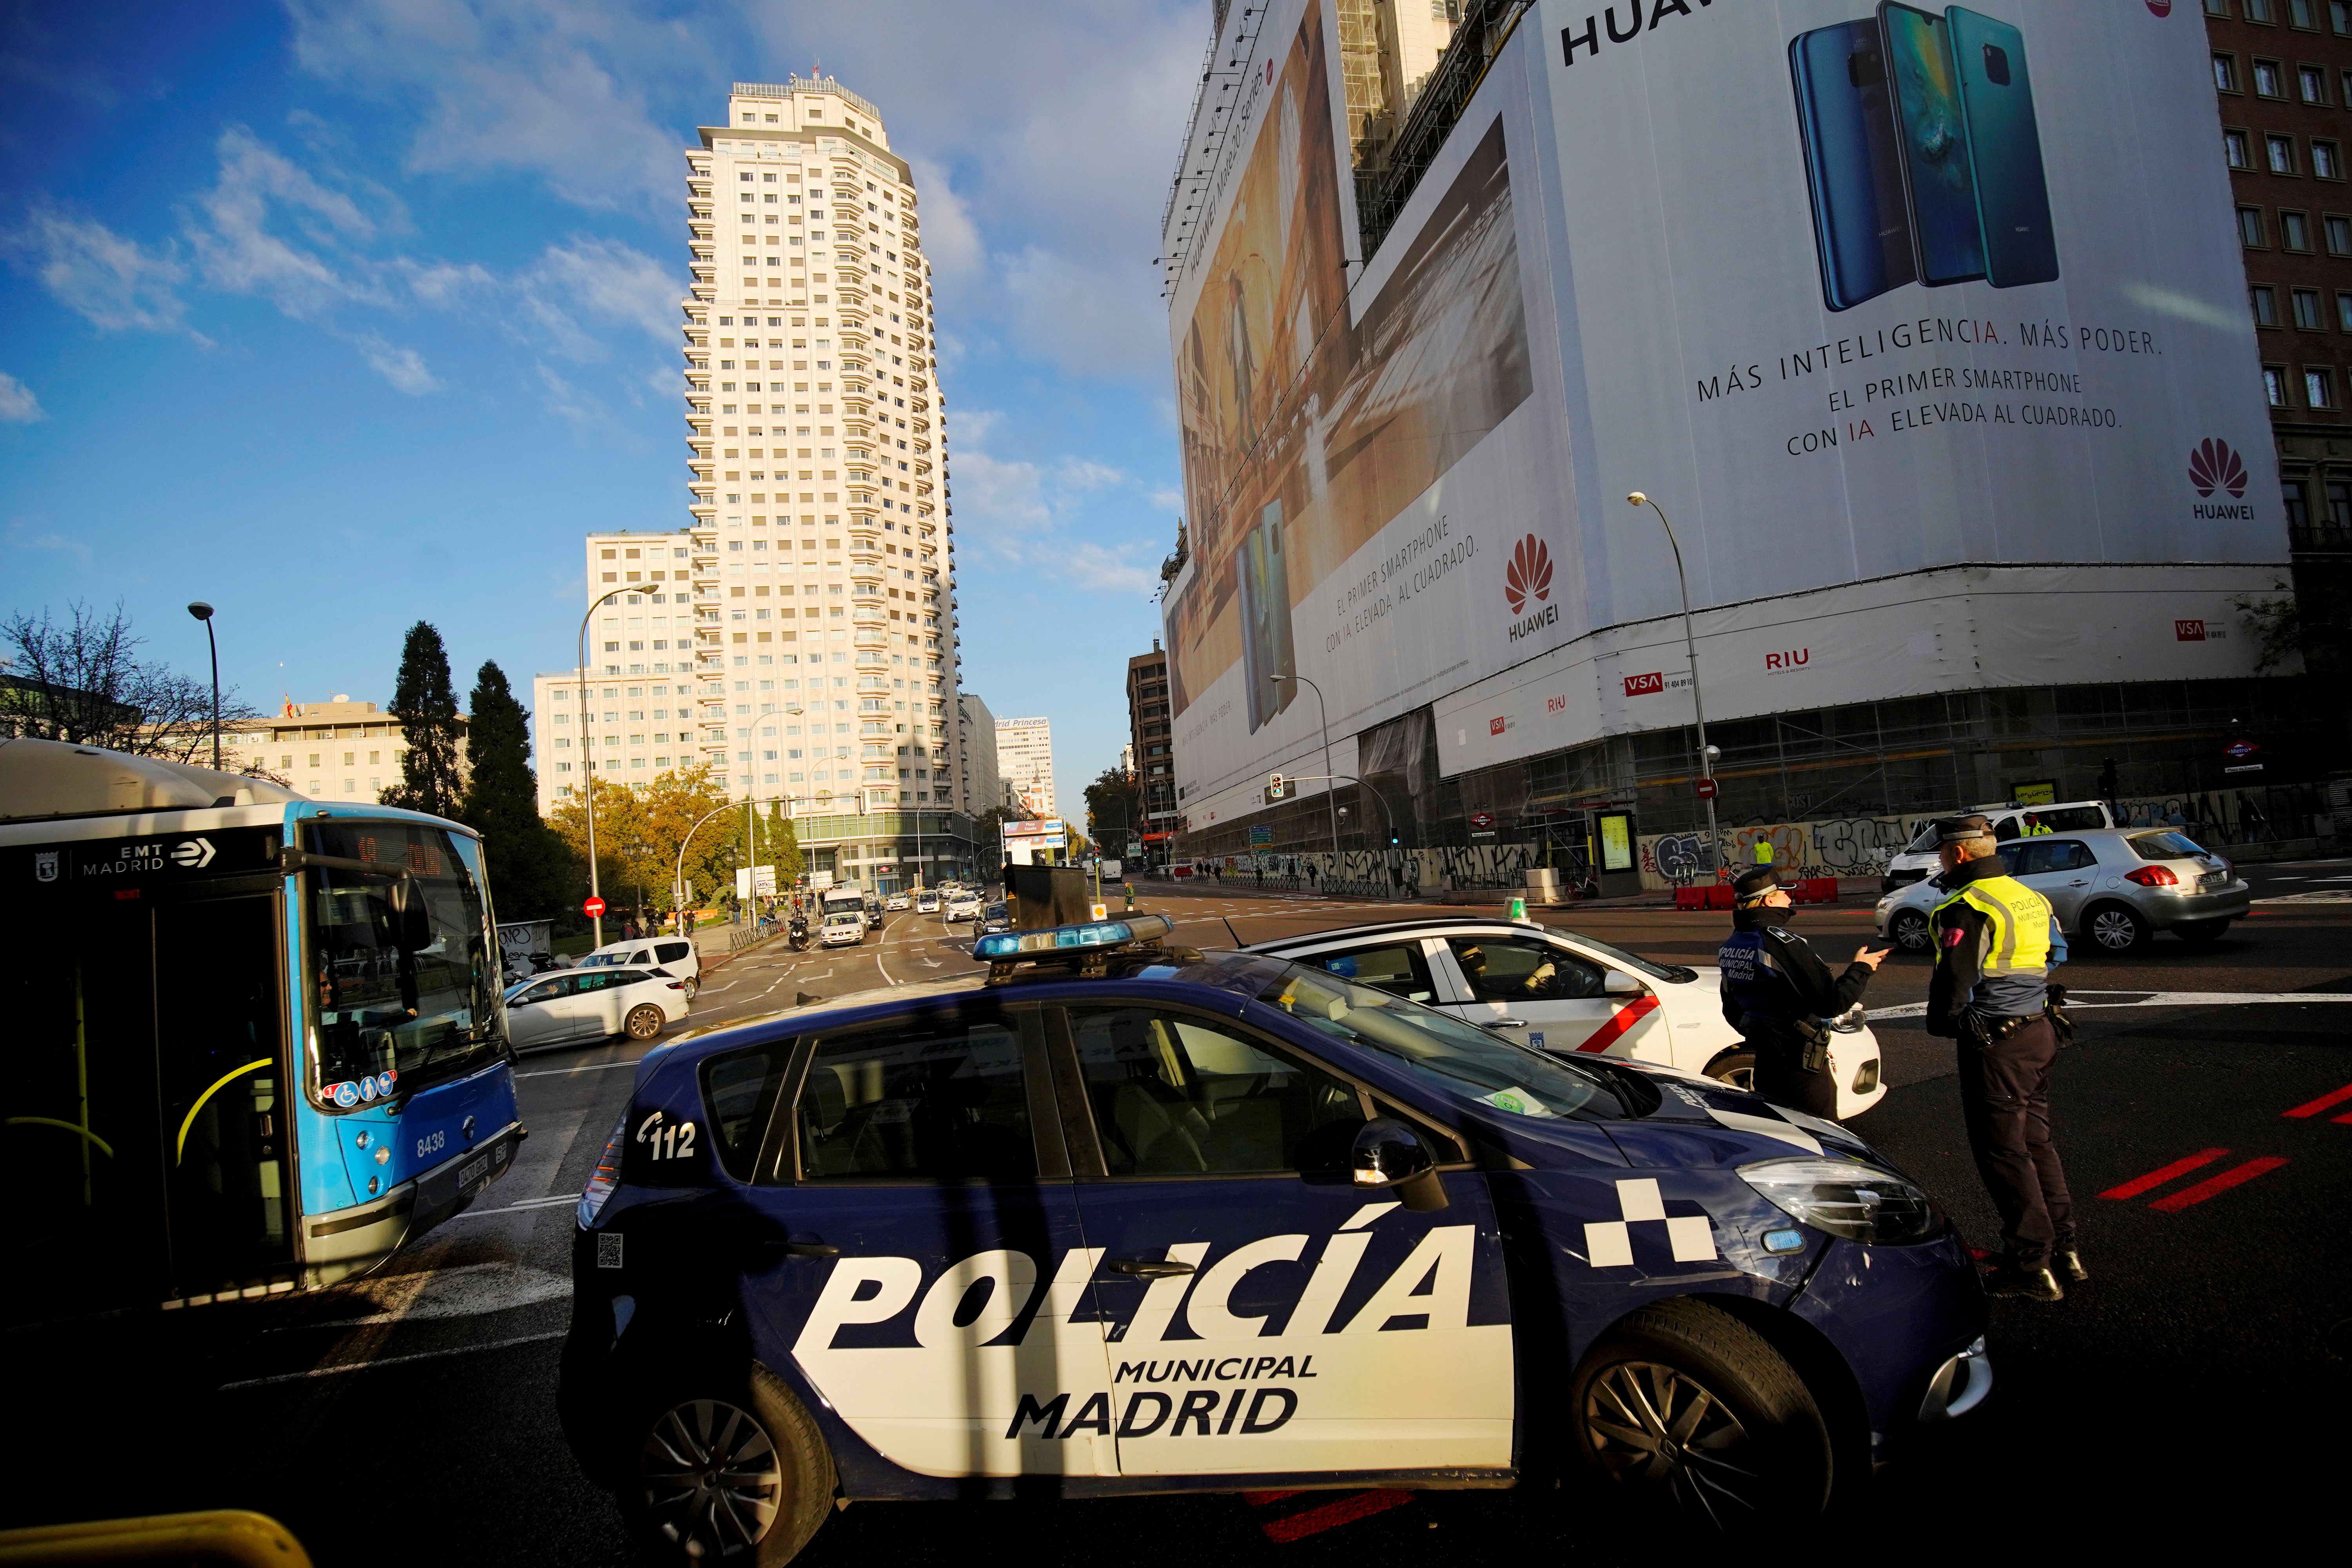 Local police officers are seen during the first day of a ban on polluting vehicles in the city center as they only allow non-polluting cars with the right sticker, in Madrid, Spain, November 30, 2018. REUTERS/Juan Medina